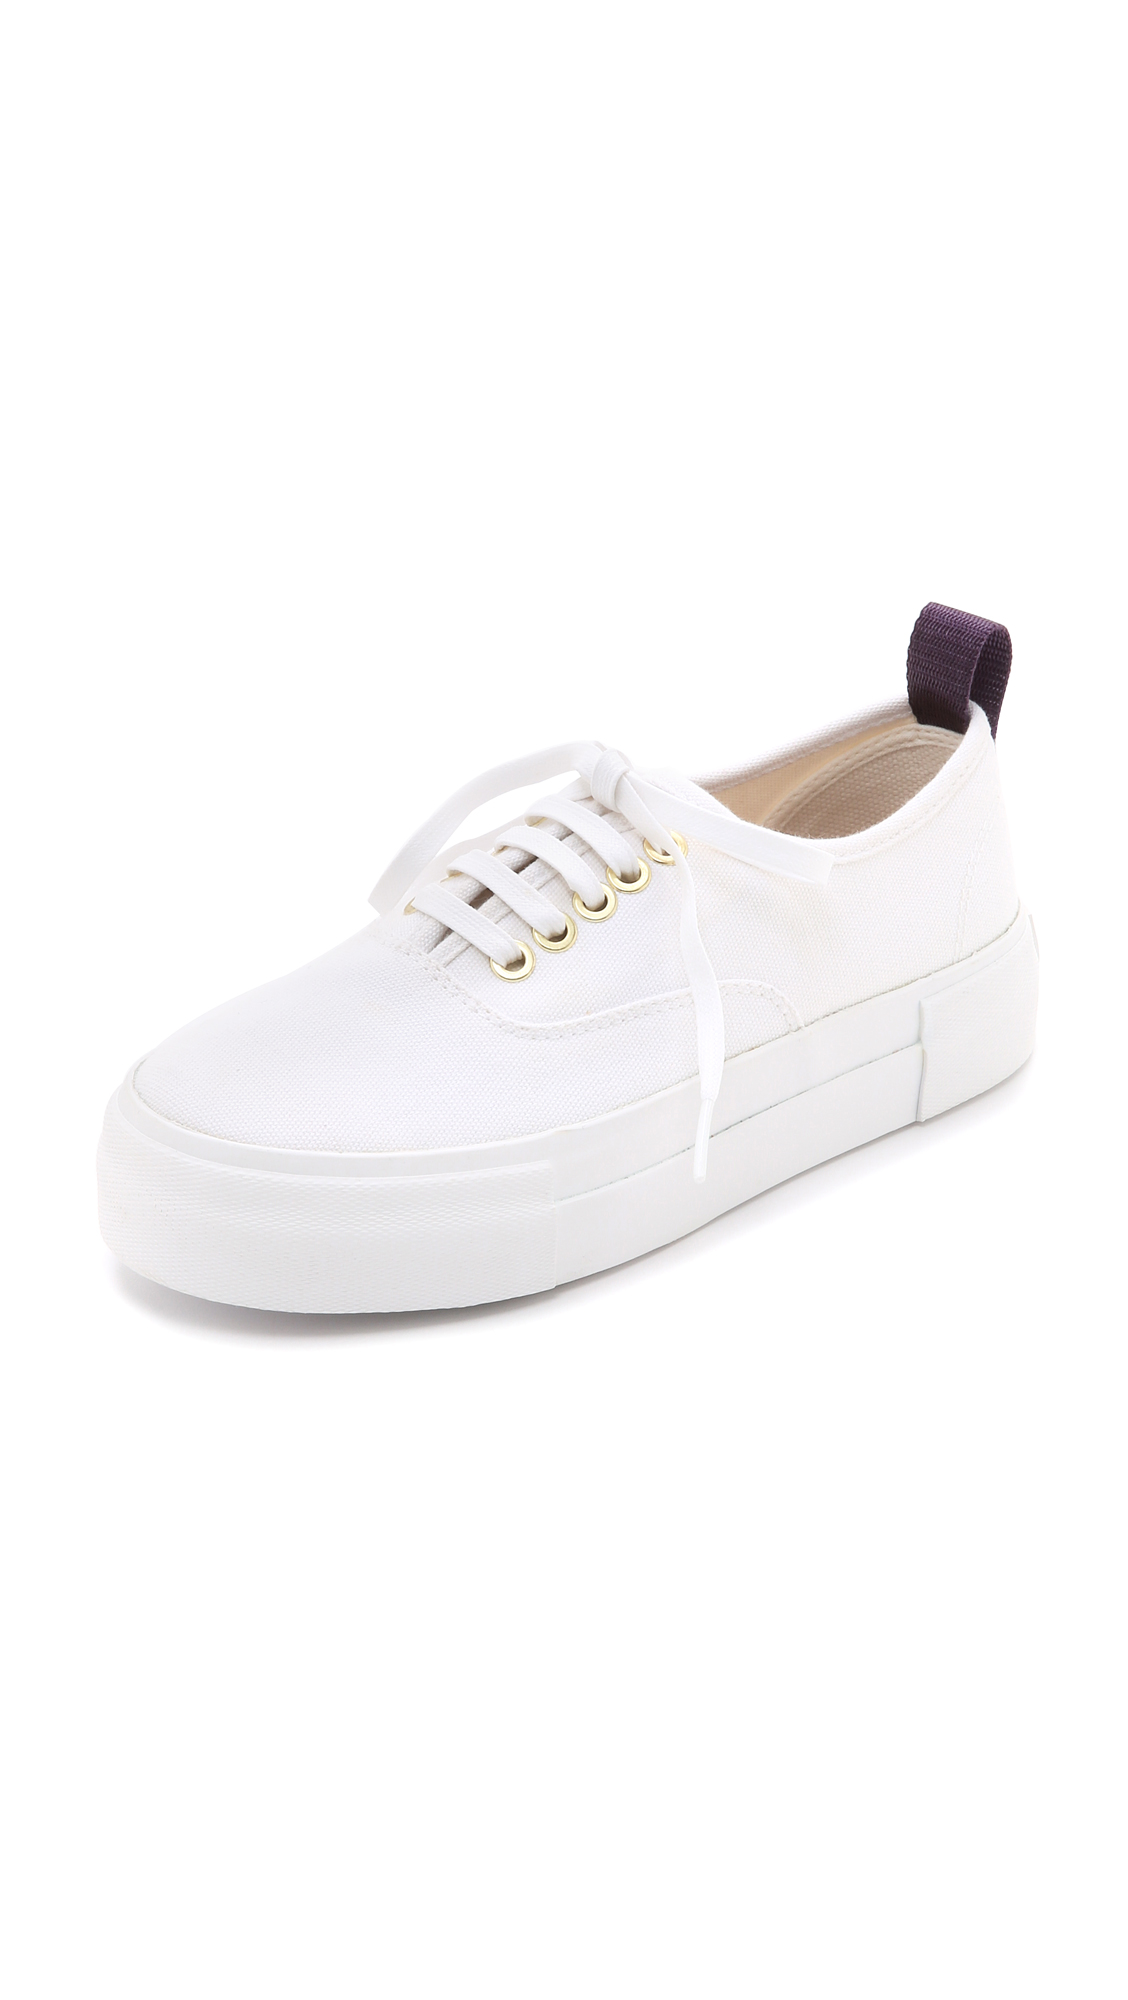 Eytys Mother Canvas Sneakers - White